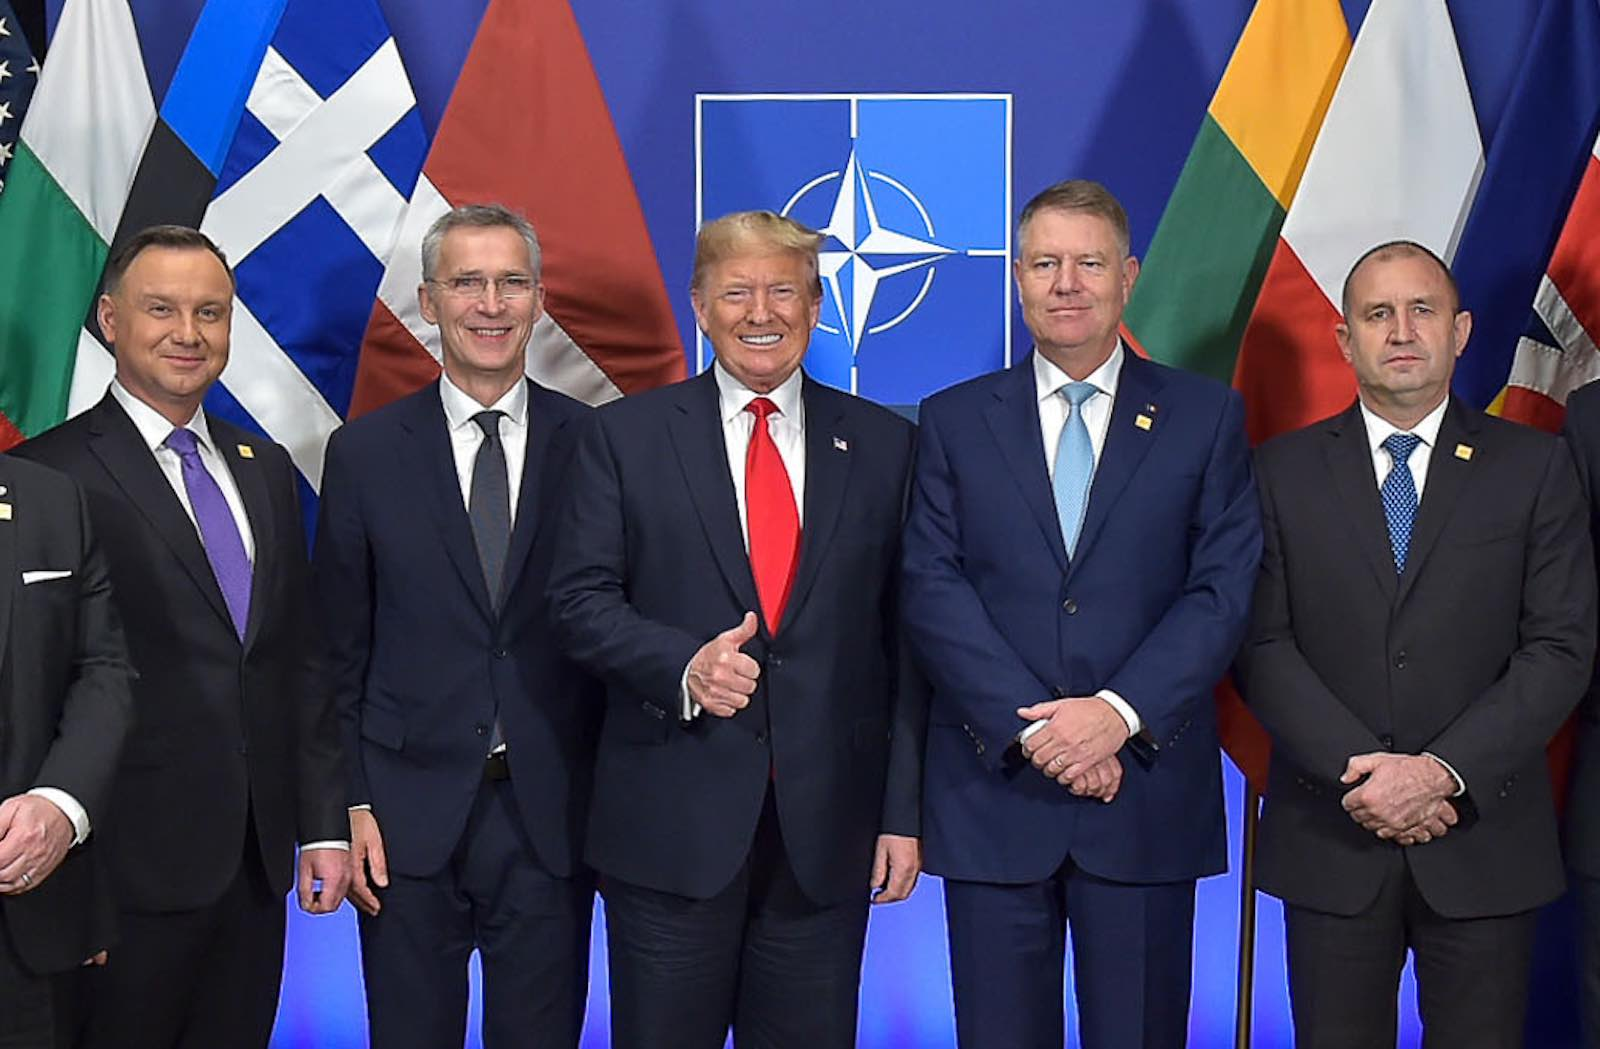 A working lunch including Poland's President Andrzej Duda, NATO Secretary General Jens Stoltenberg, US President Donald Trump, Romanian President Klaus Werner Iohannis, Bulgarian President Rumen Radev (Photo: NATO/Flickr)